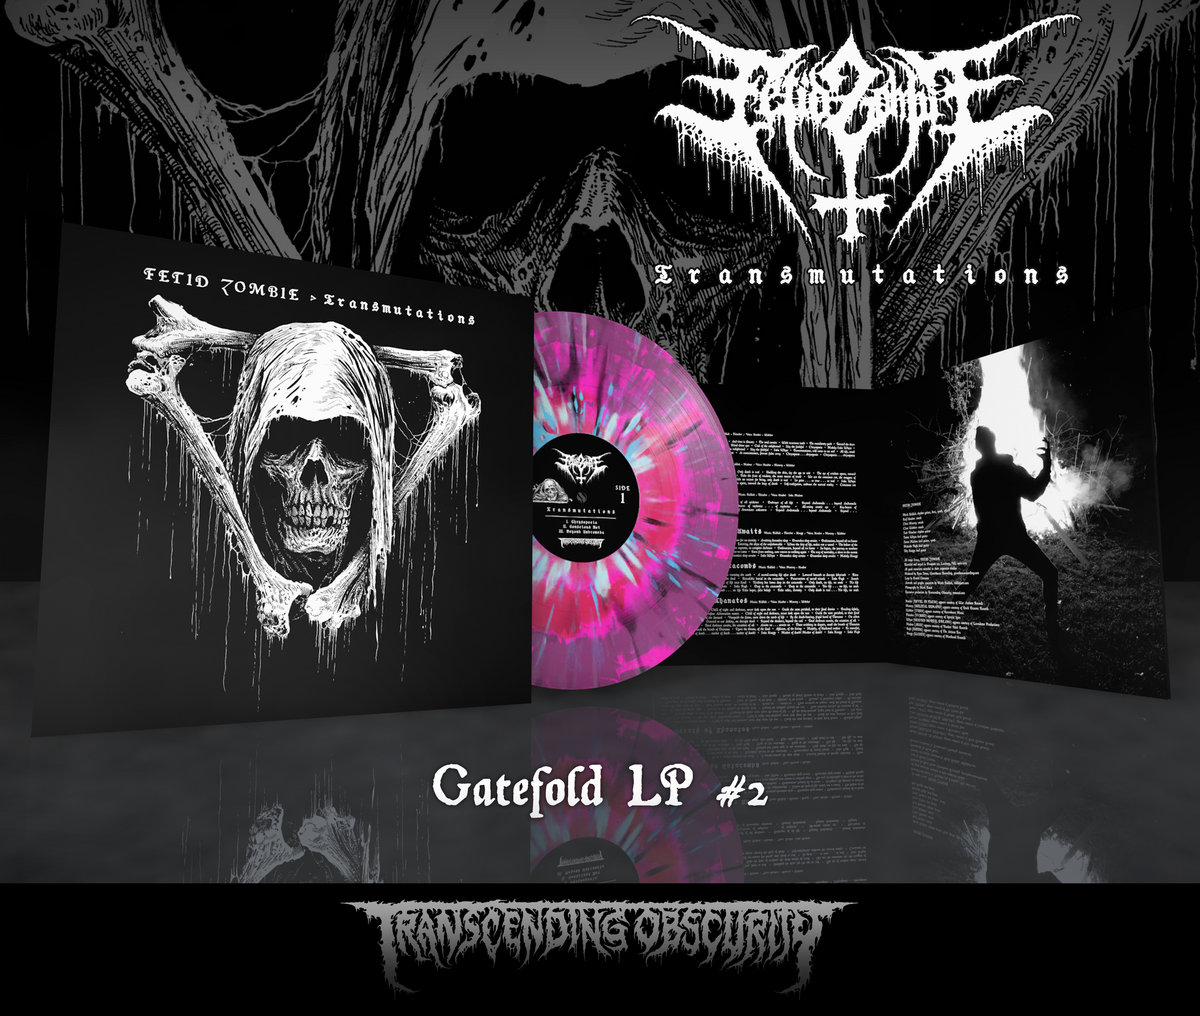 FETID ZOMBIE - Transmutations Gatefold LP with Metallic Effect and Embossing (Limited to 75 per variant)